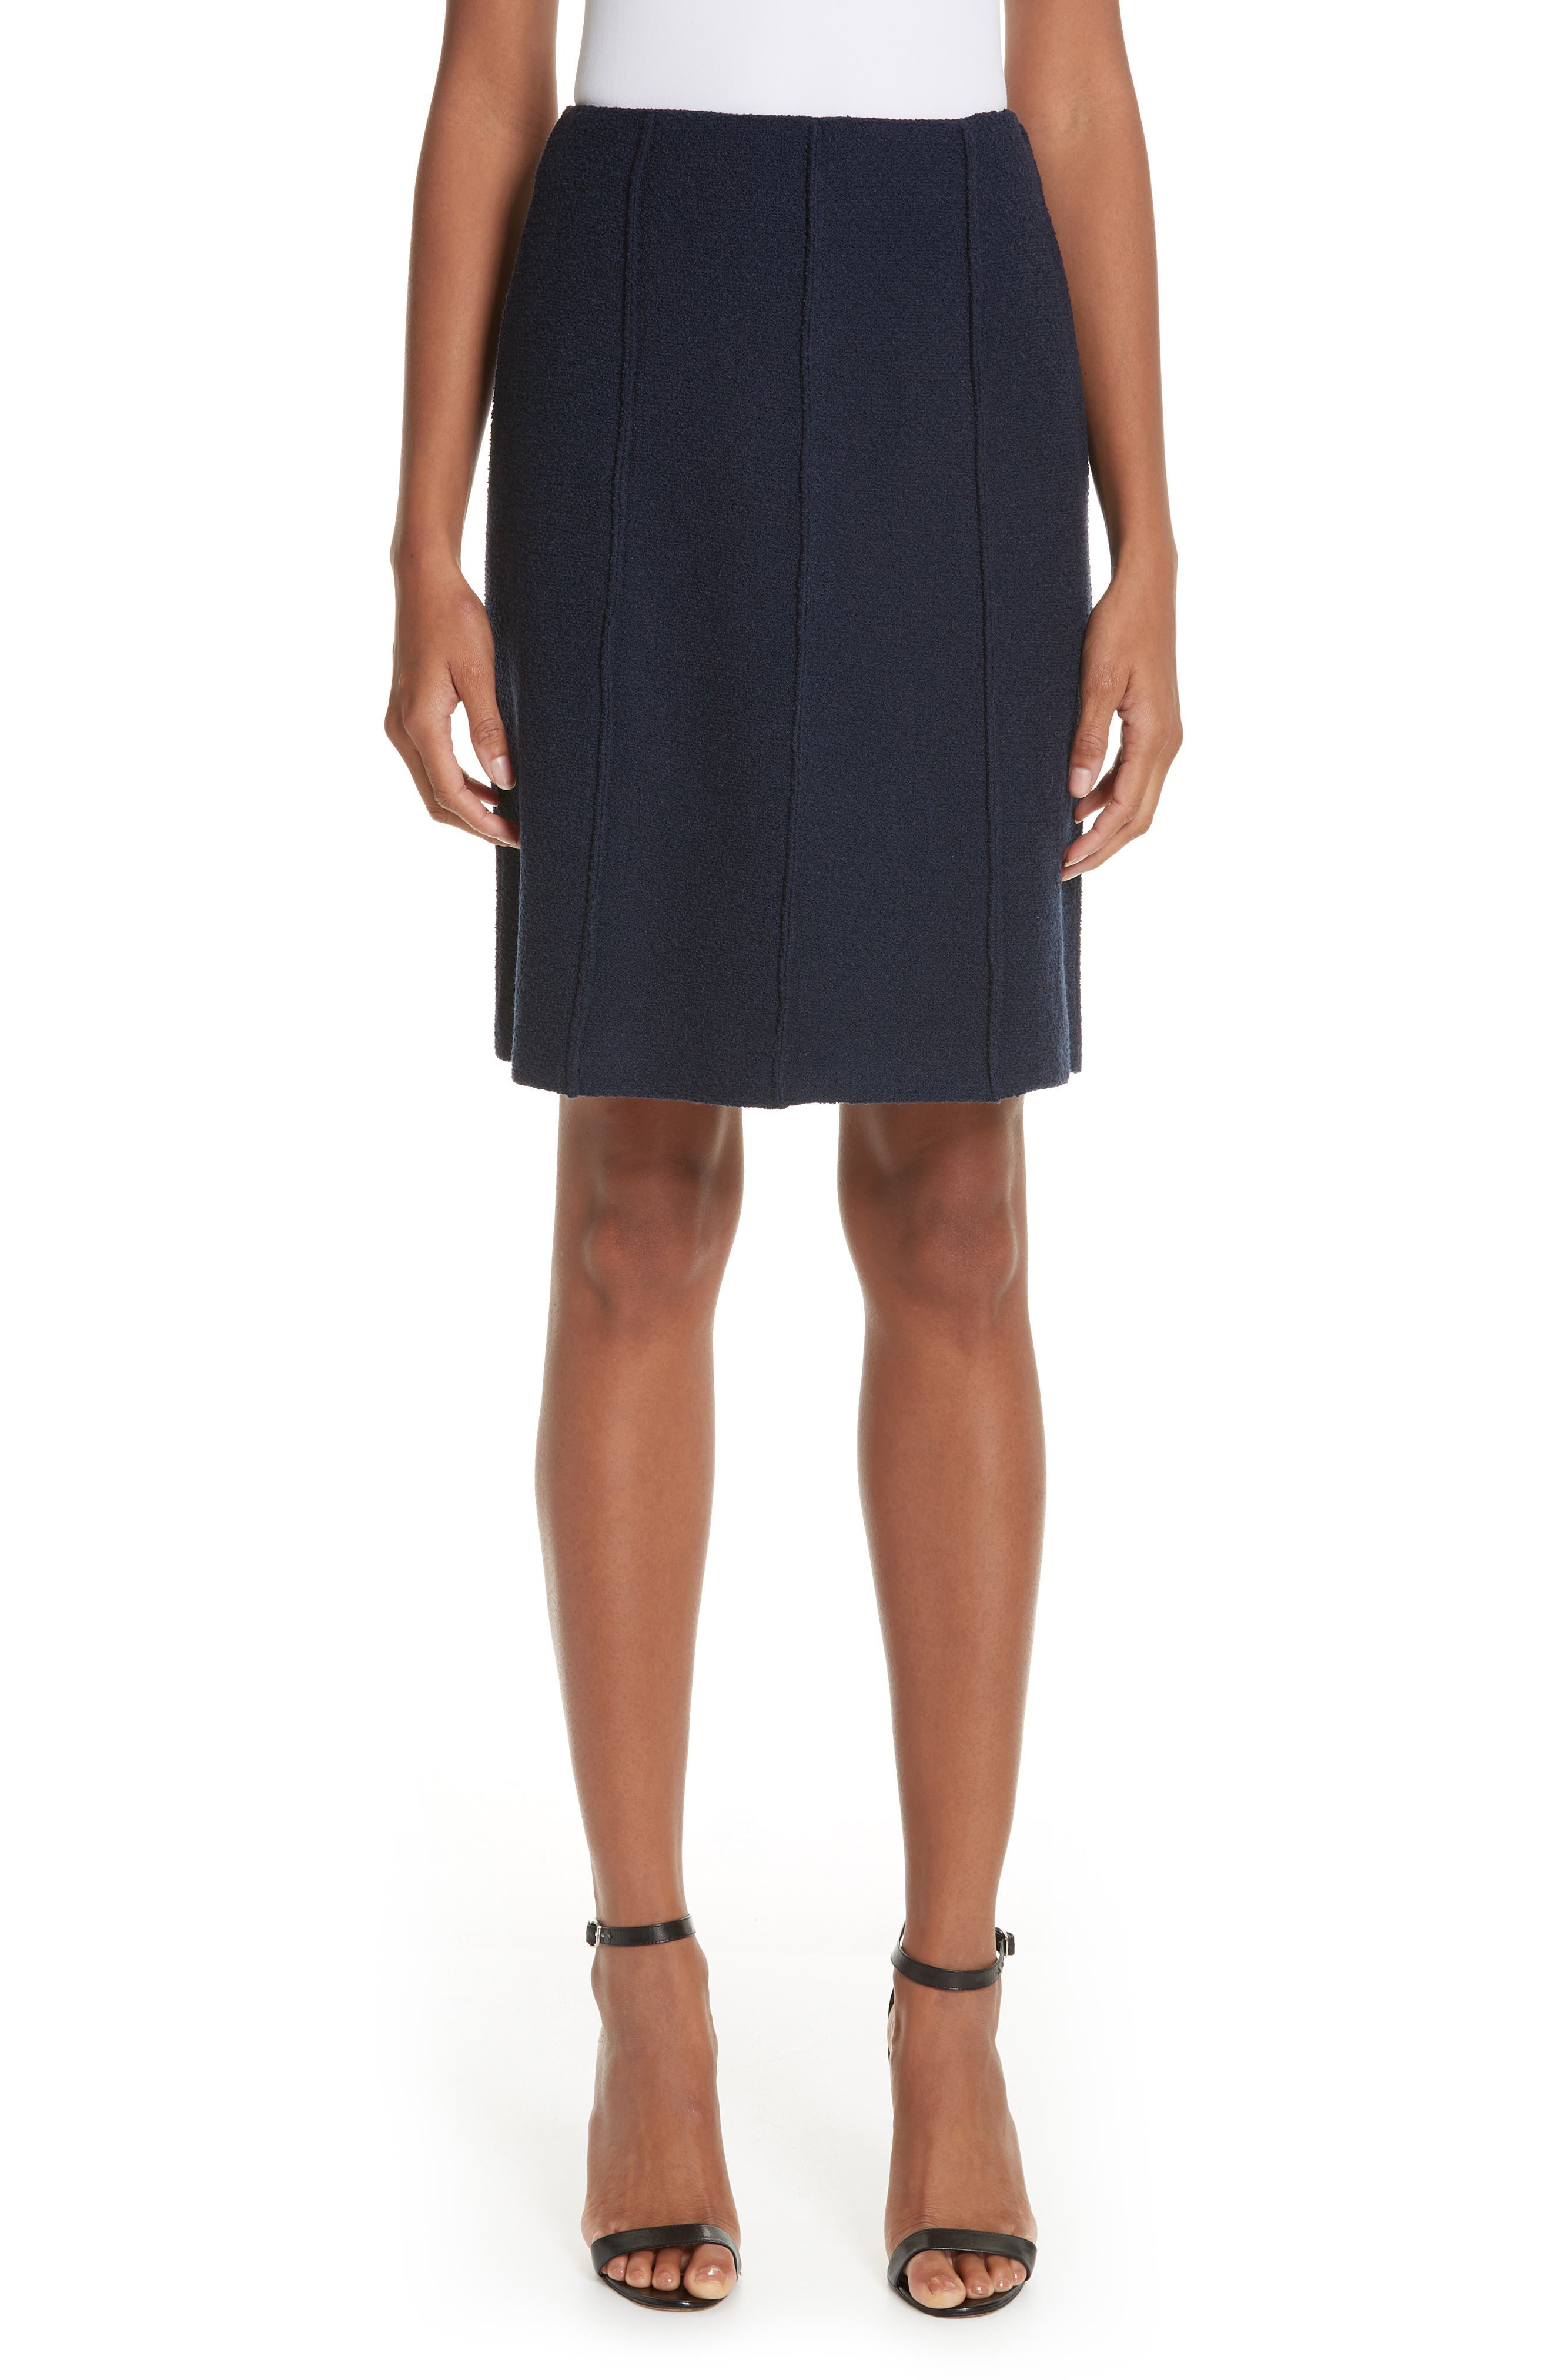 Ana Boucle Knit A-Line Skirt in Dpbl